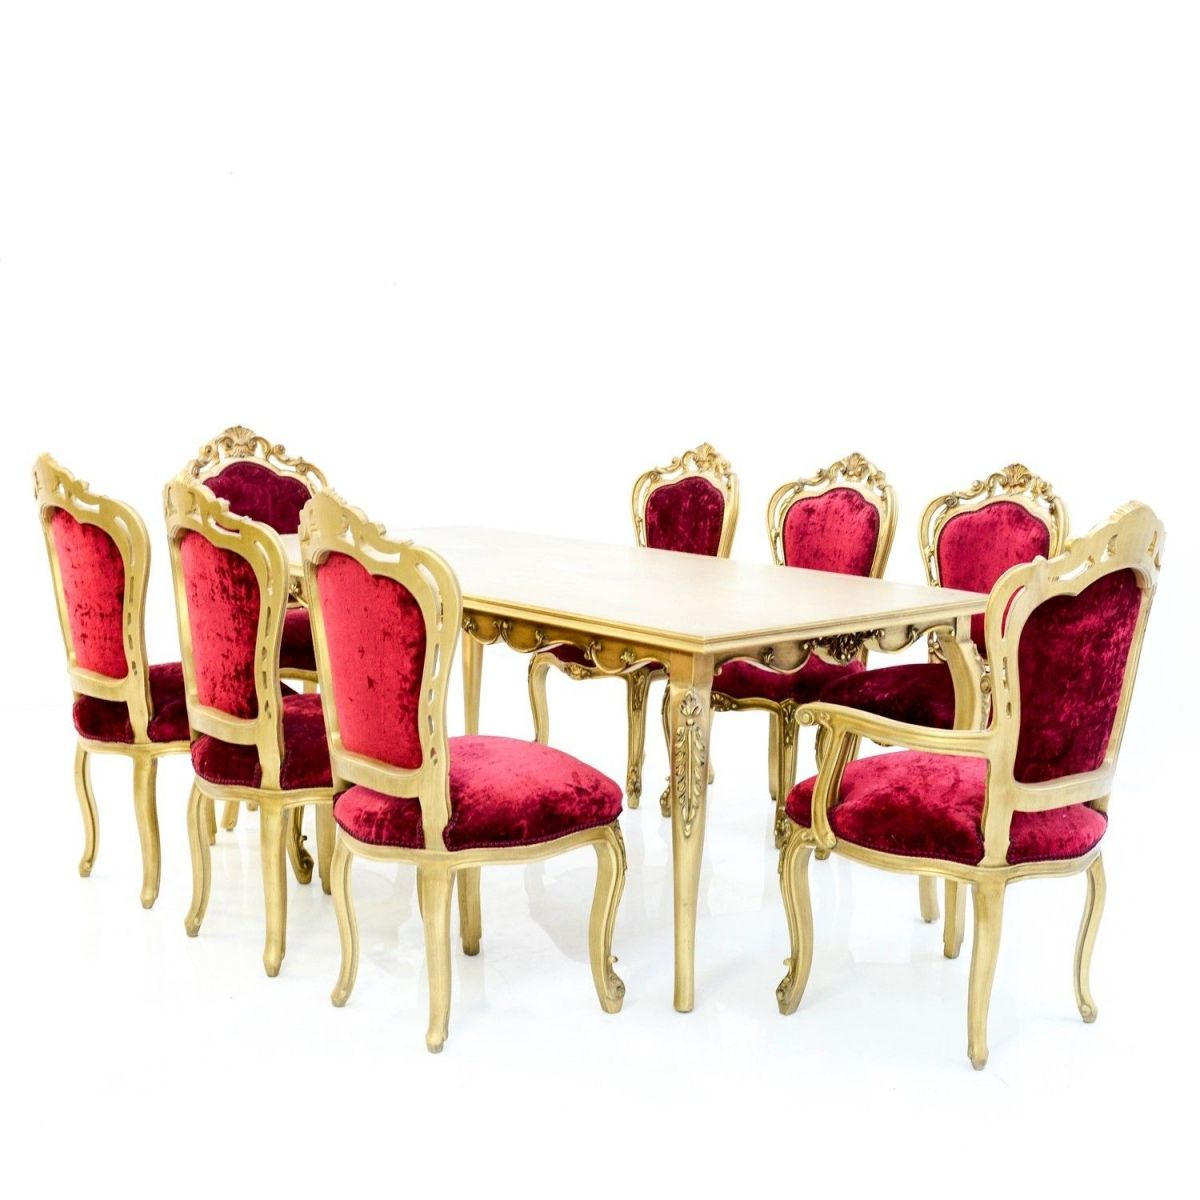 Τραπεζαρία Χ-10039-French Style Dining Room k1-10039